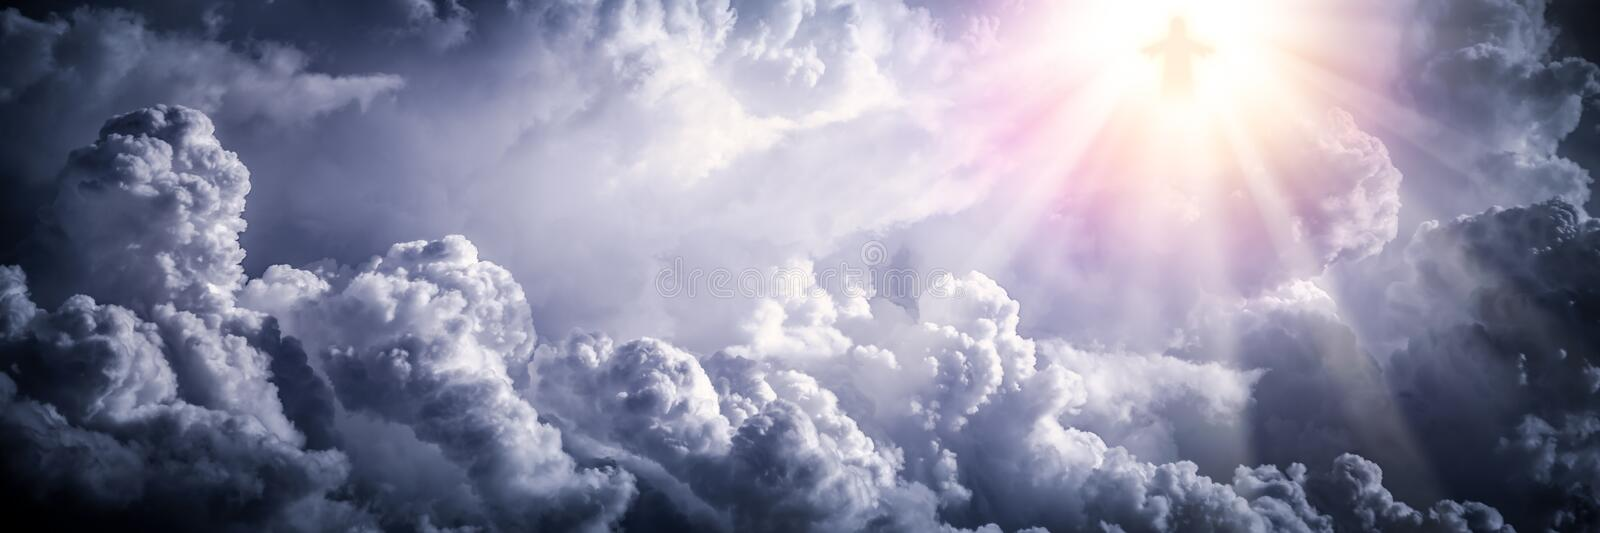 Jesus Christ in de wolken royalty-vrije stock fotografie